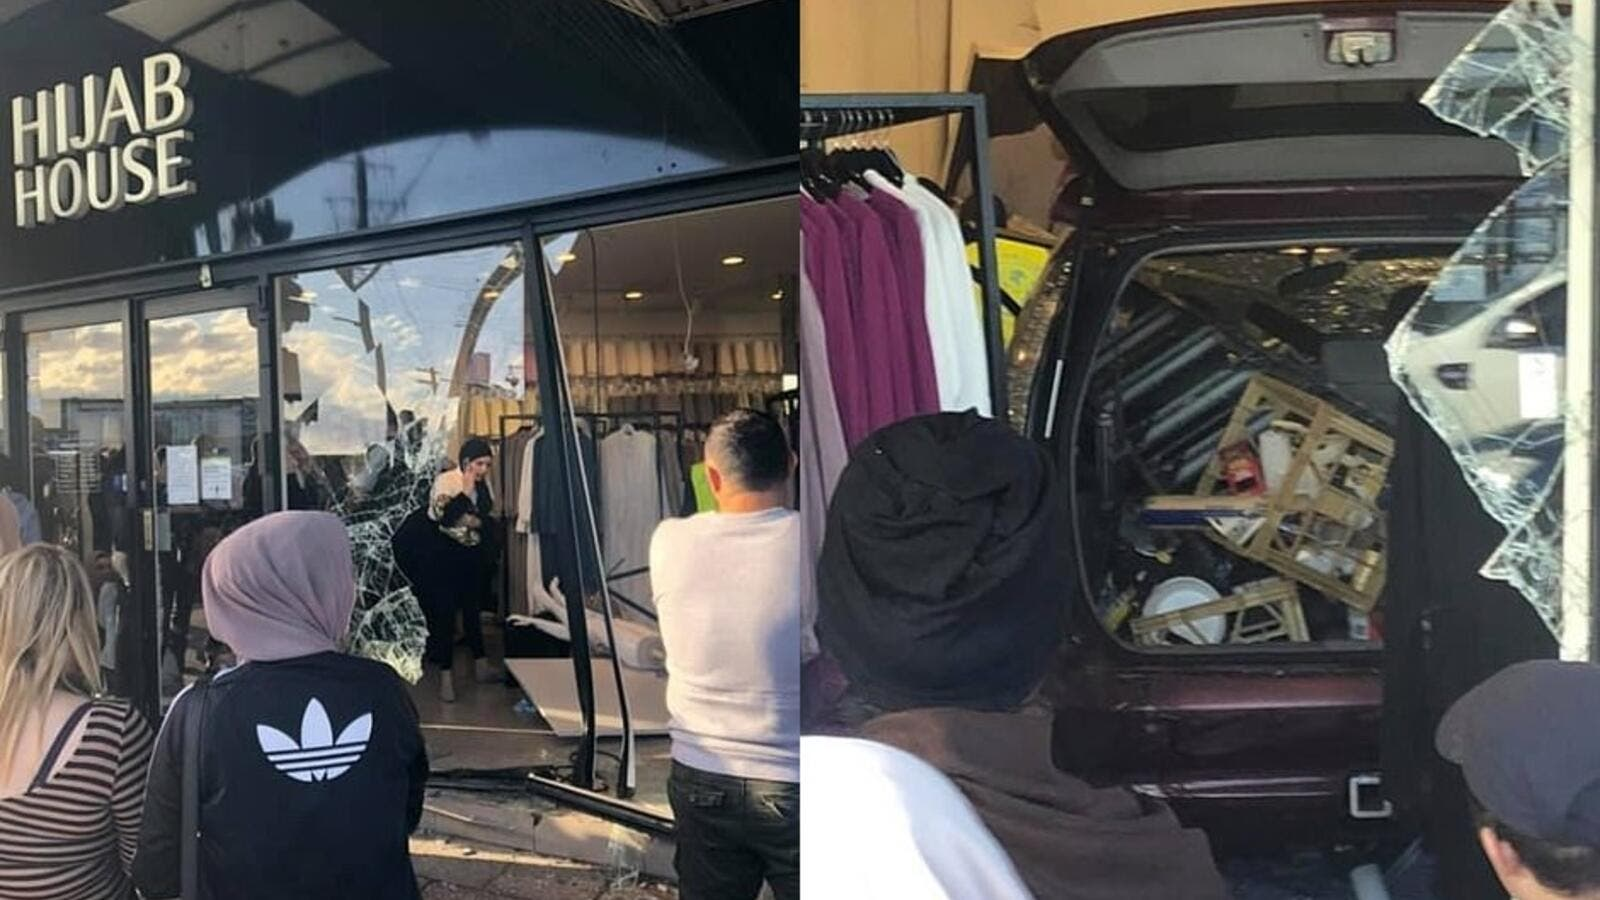 At least 12 injured from vehicle  crashing into shop in Australia's Sydney